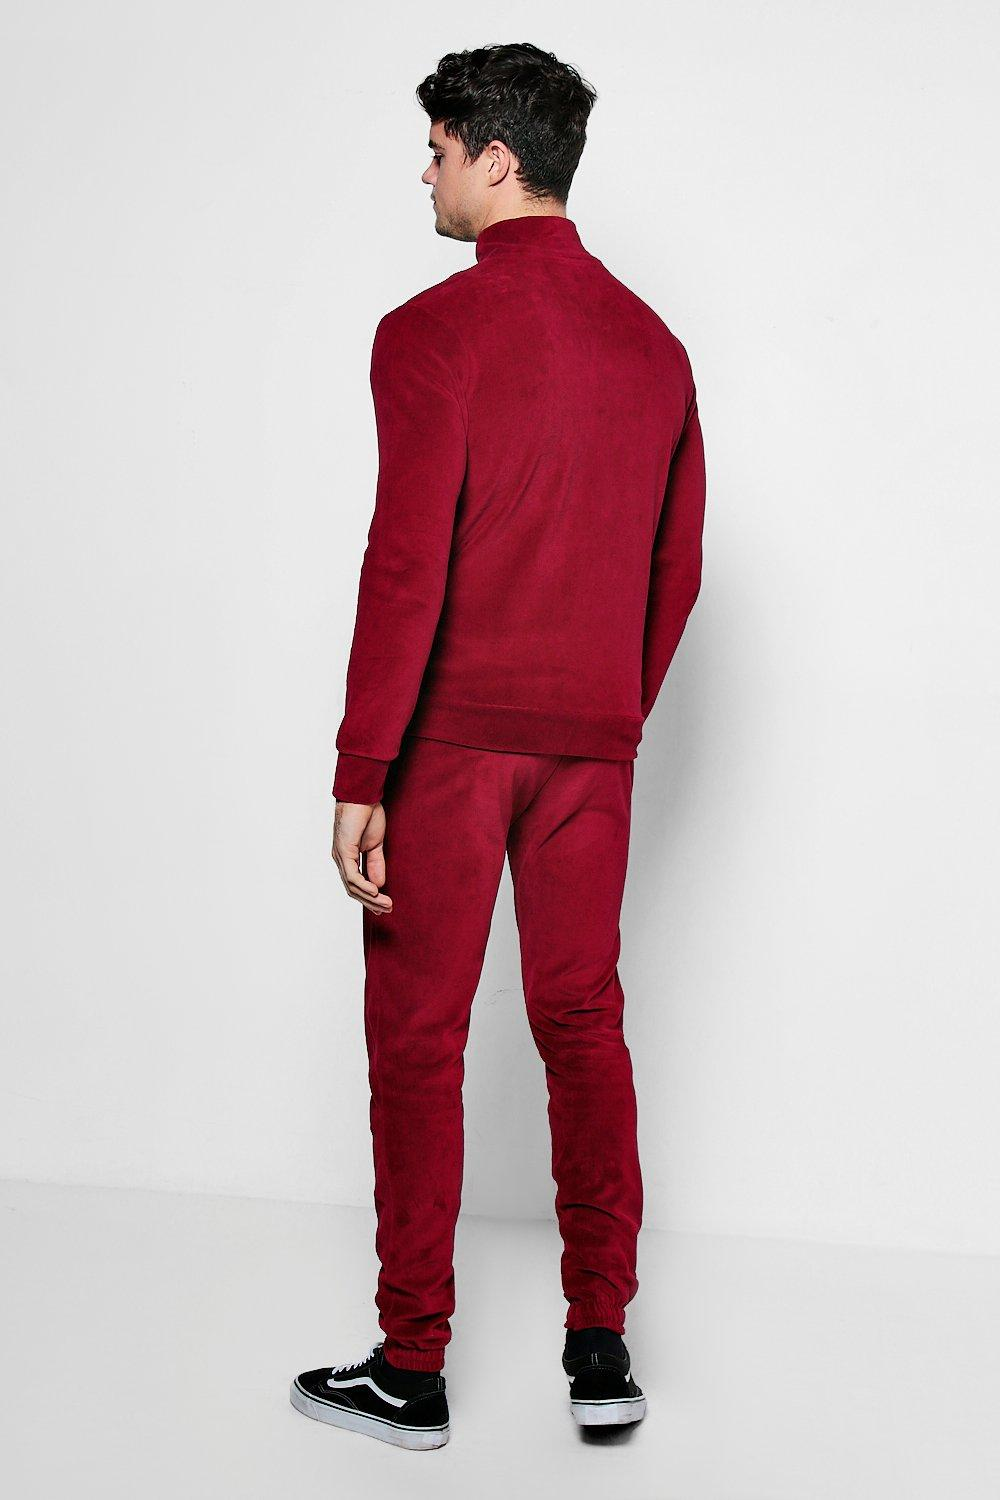 VELVET PANEL TRACK SUIT - The Executive Line